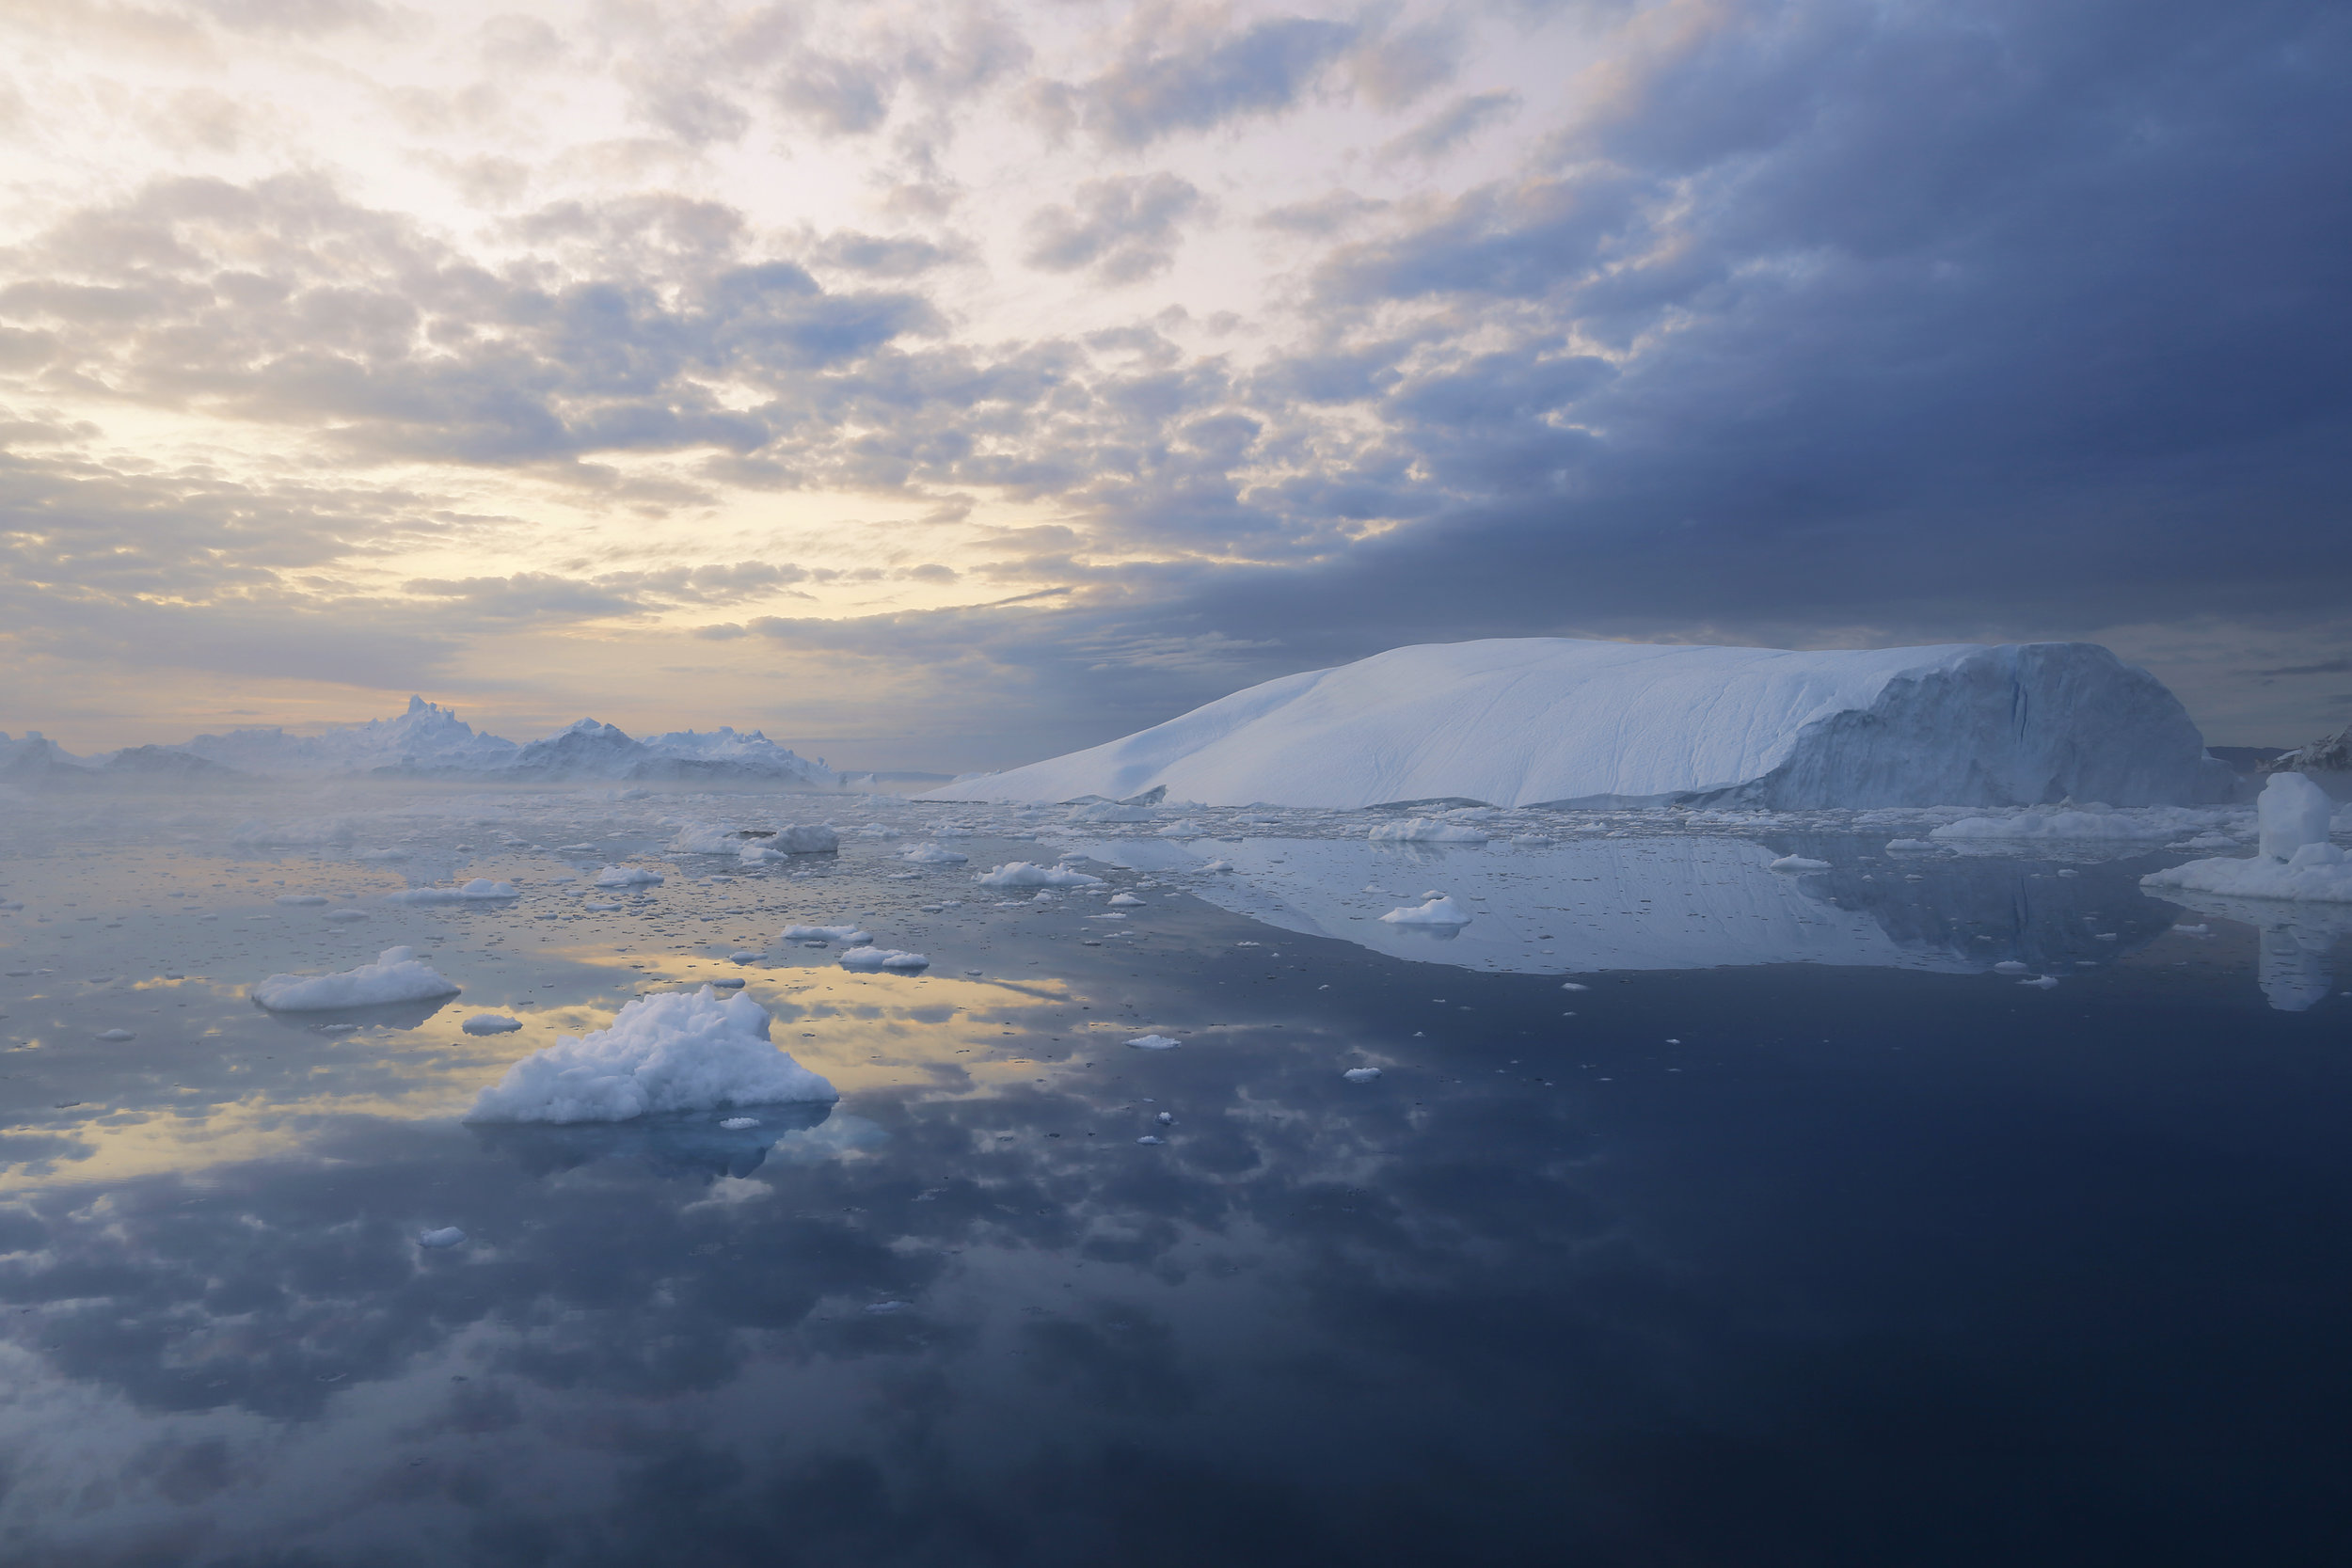 Alternate plans are in place for the South Pole solo which is postponed until 2019/2020